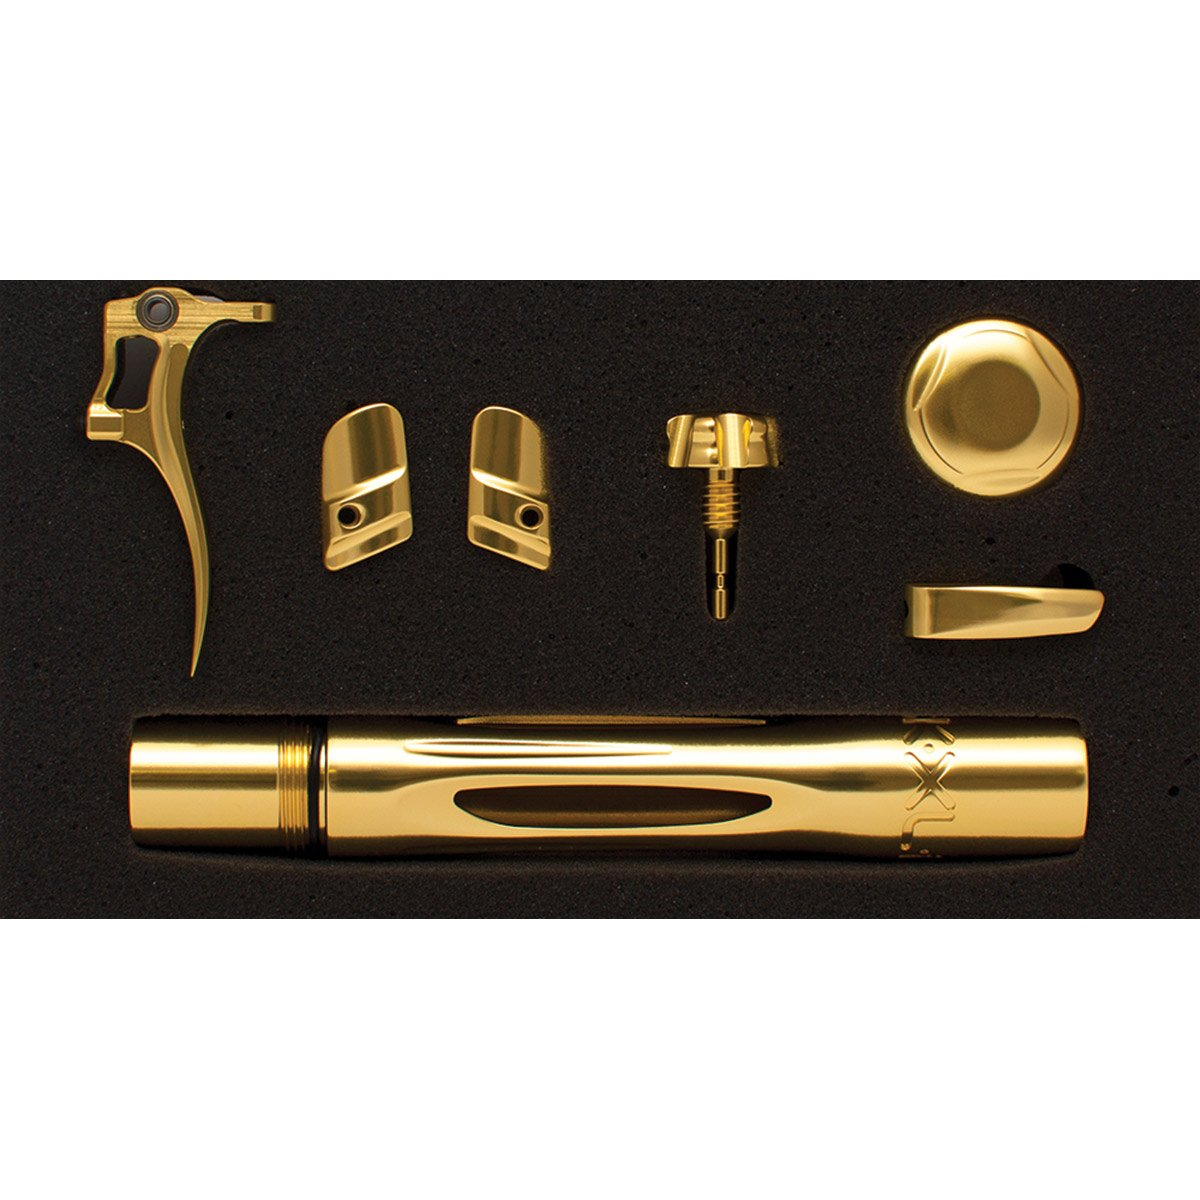 SP Shocker XLS Accent Color Kit - Gloss Gold by Shocker Paintball